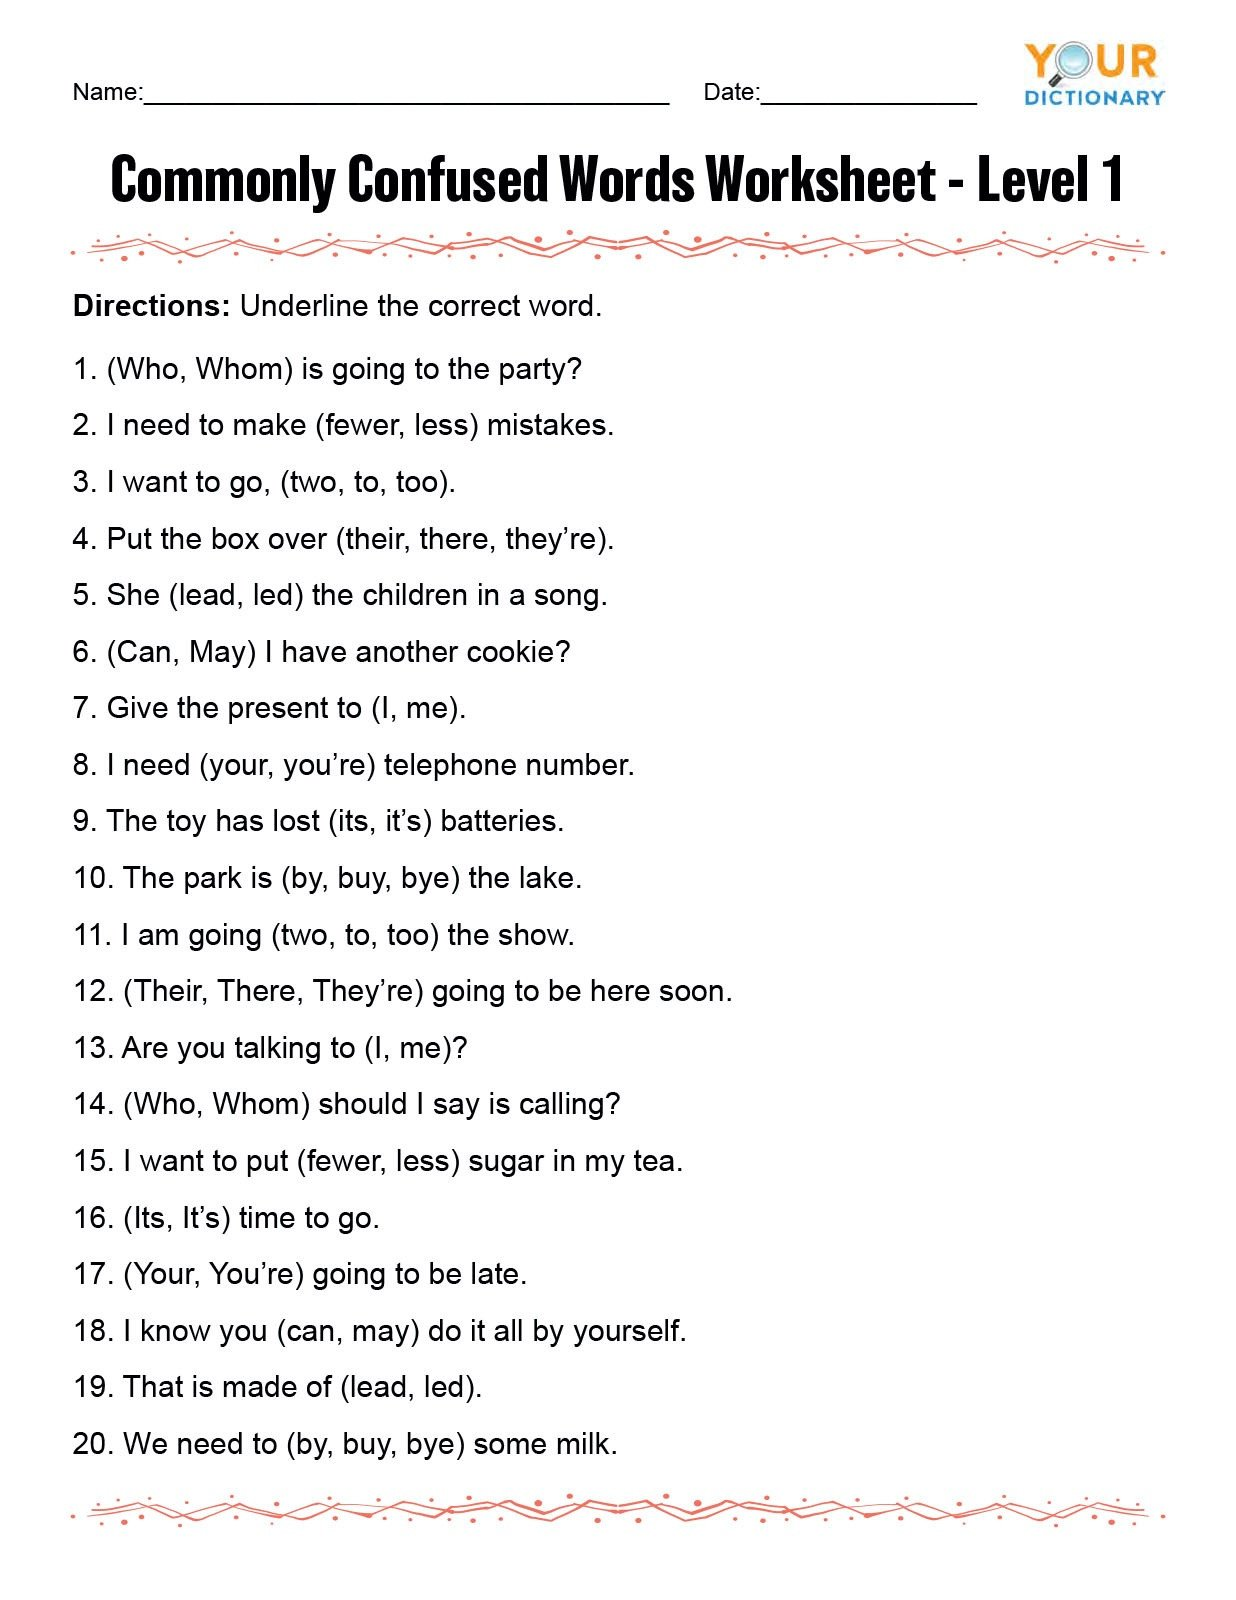 Homophones Worksheet 5th Grade Monly Confused Words Worksheet